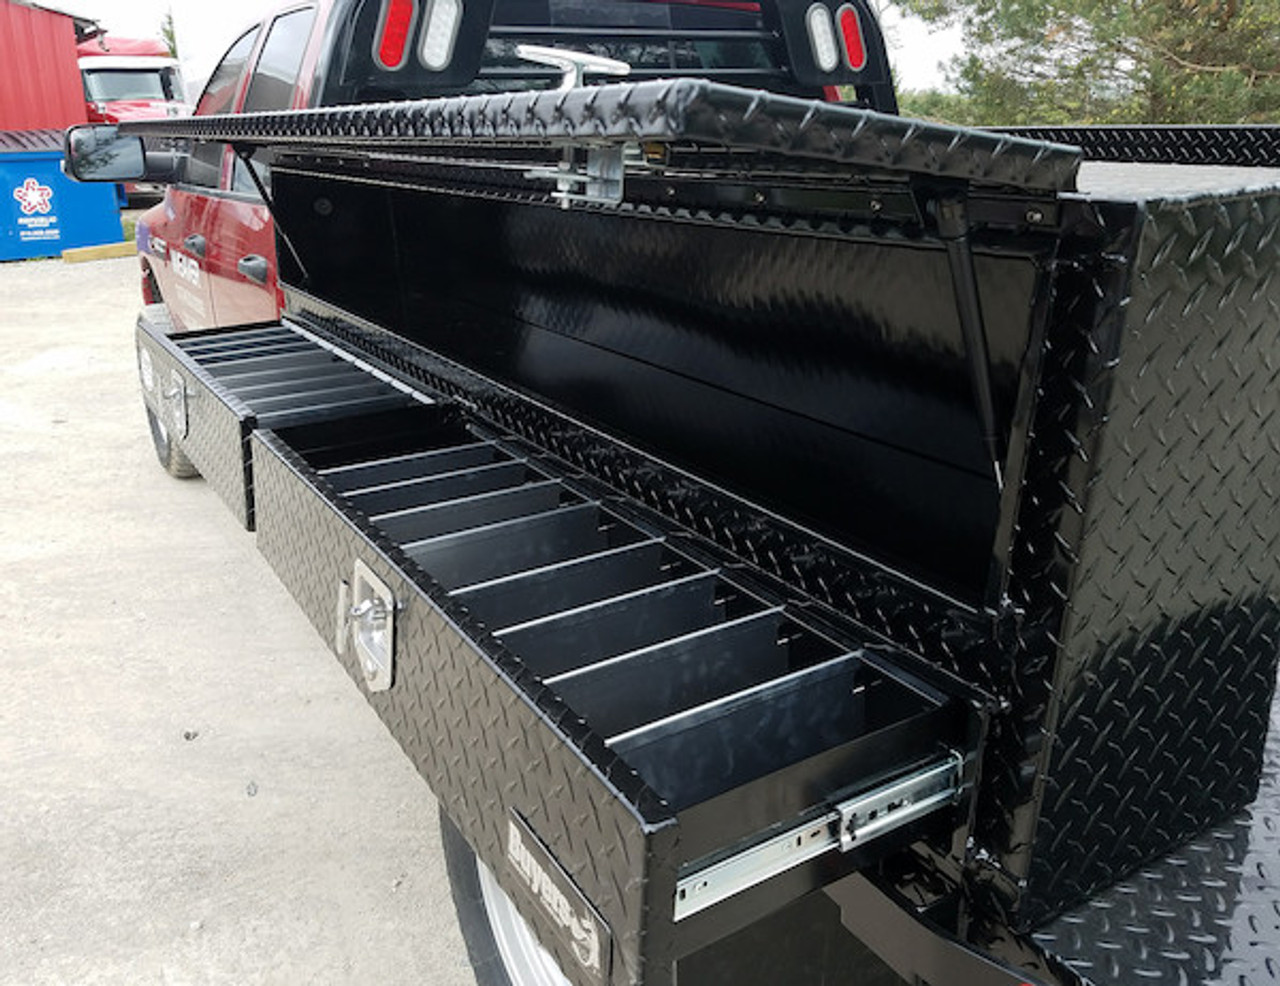 """1725641 BUYERS PRODUCTS BLACK DIAMOND TREAD ALUMINUM CONTRACTOR TRUCK BOX WITH LOWER DRAWERS 21""""HX13.5""""DX72""""W"""